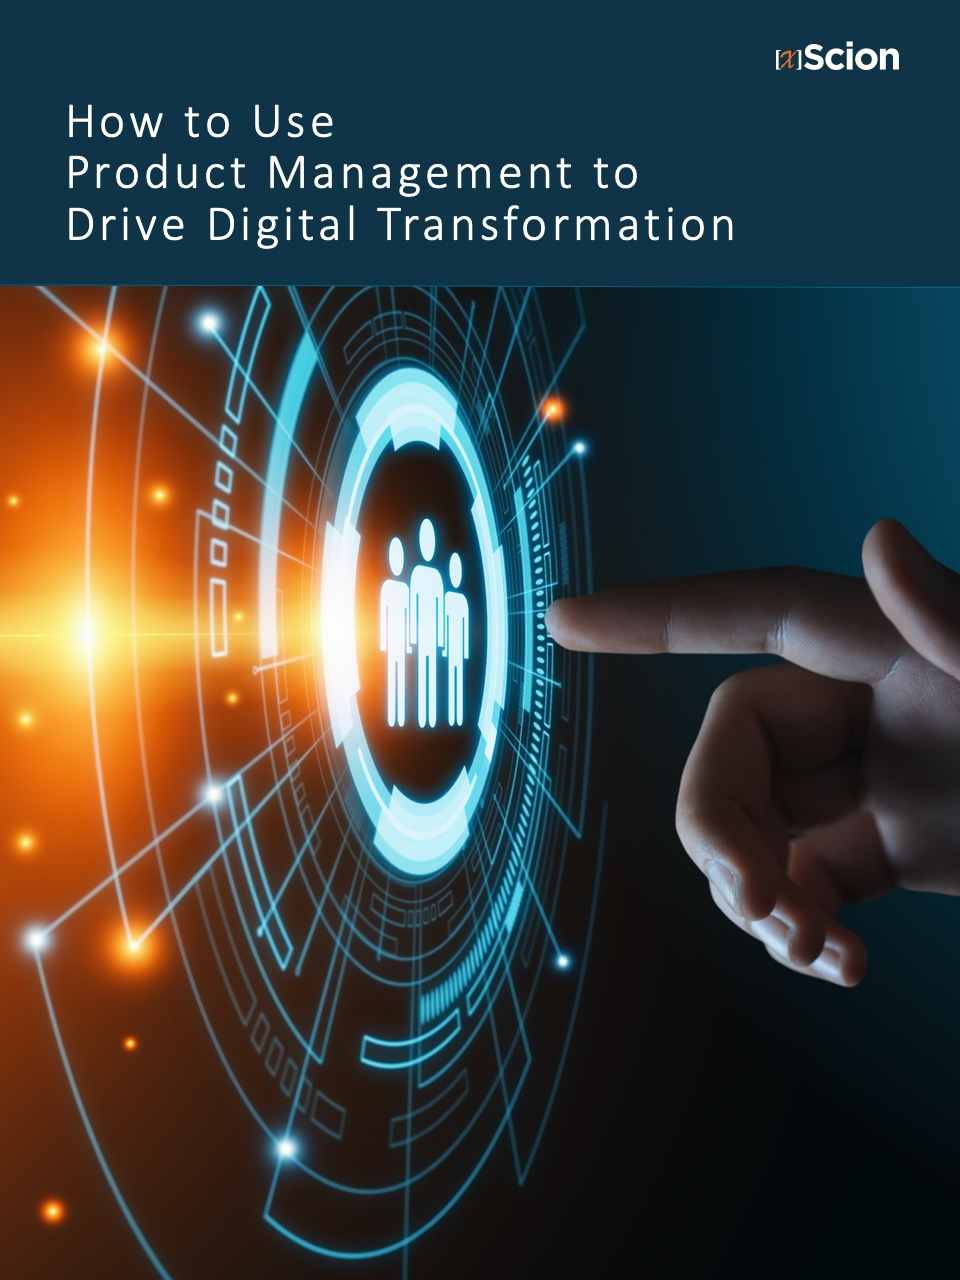 How to Use Product Management to Drive Digital Transformation